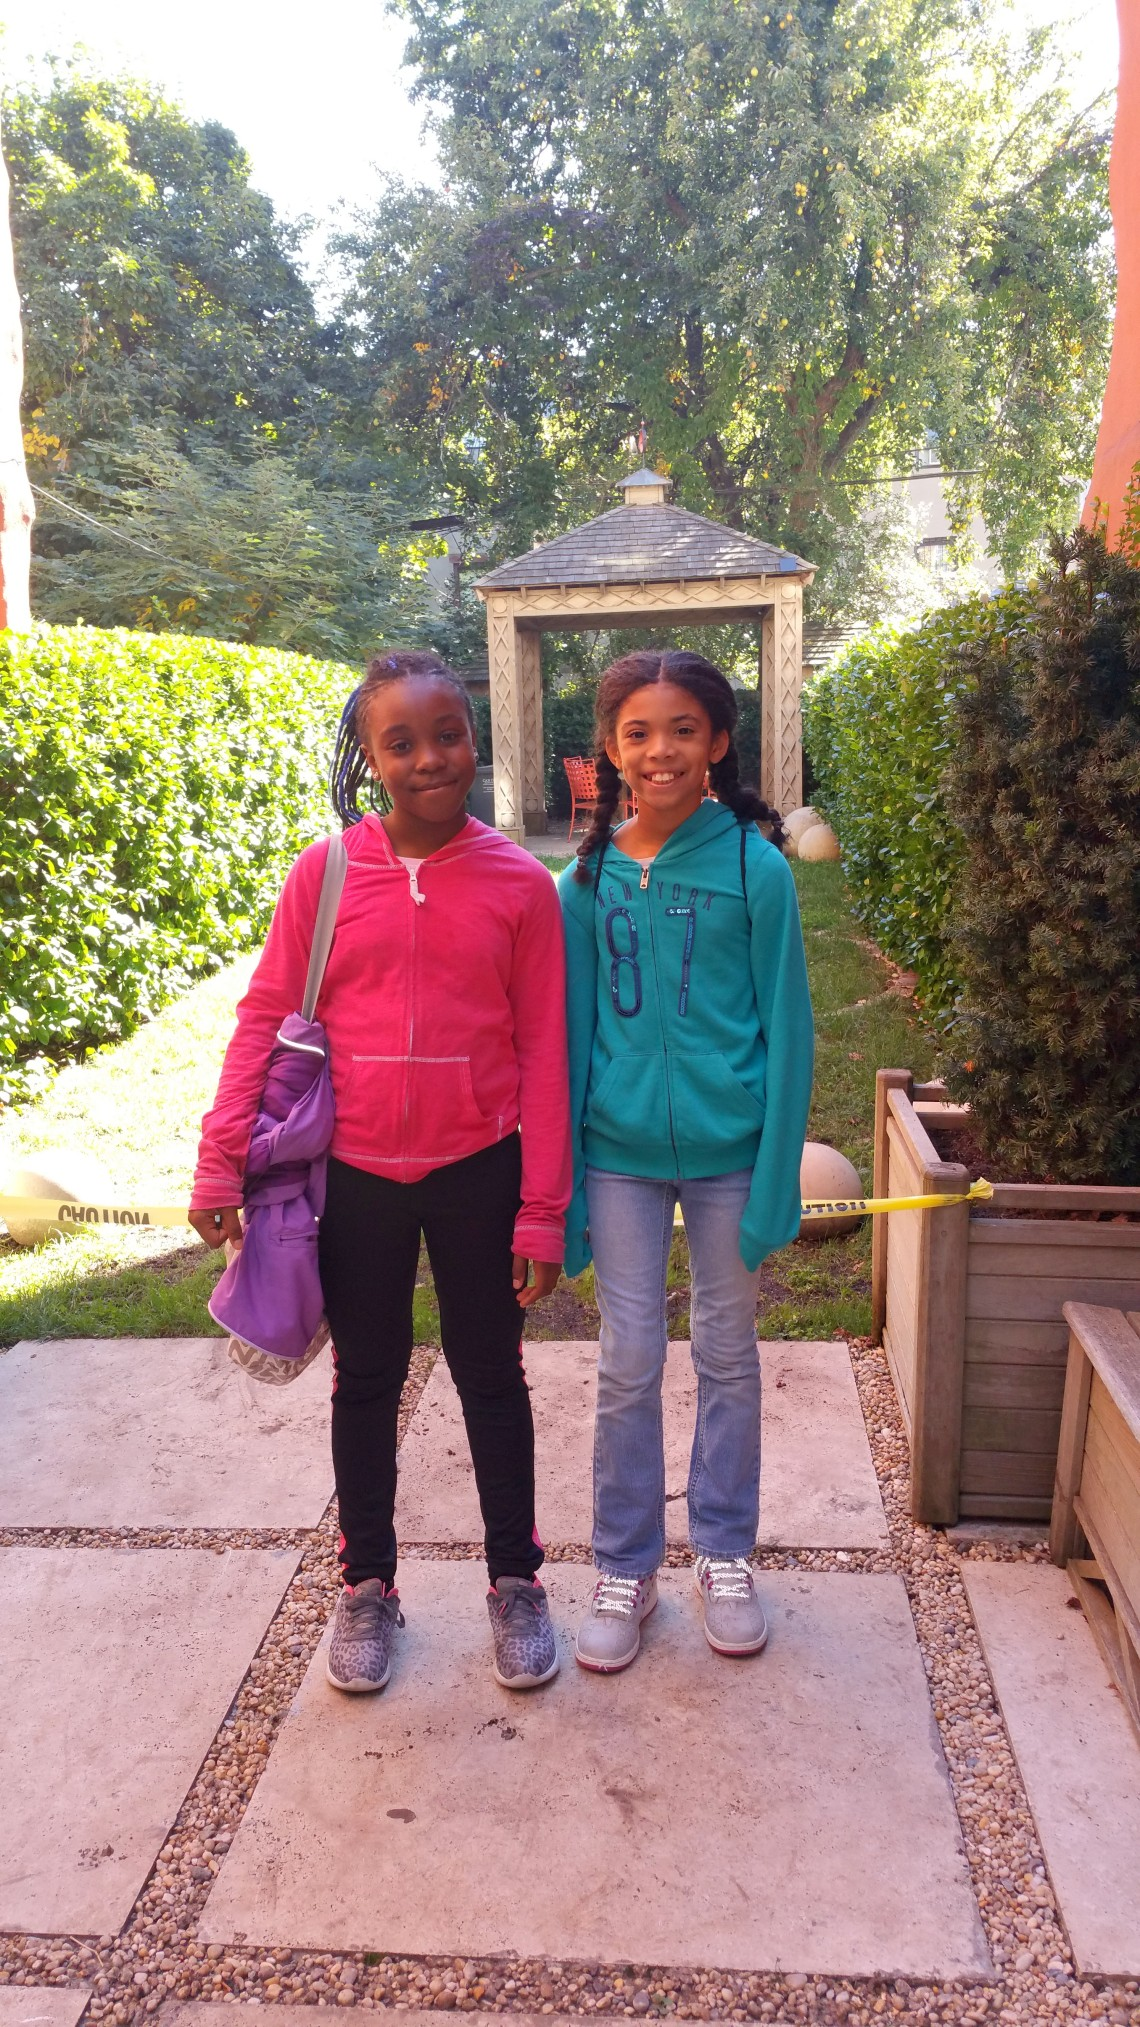 RoboRebels Team Members Amia and Kalola at Garden of Hope, Bklyn